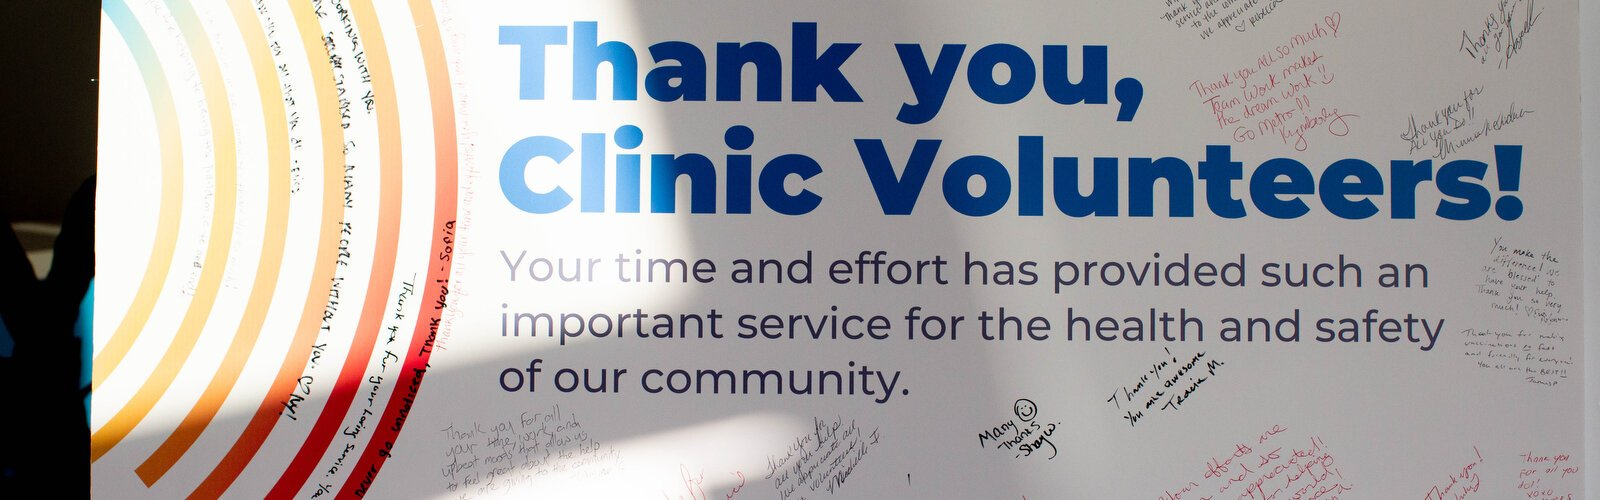 A signed poster thanking volunteers sits at the entry way where patients come in to get vaccines at Metro Inclusive Health Service which serves all people regardless of economic, ethnic, or sexual orientation.